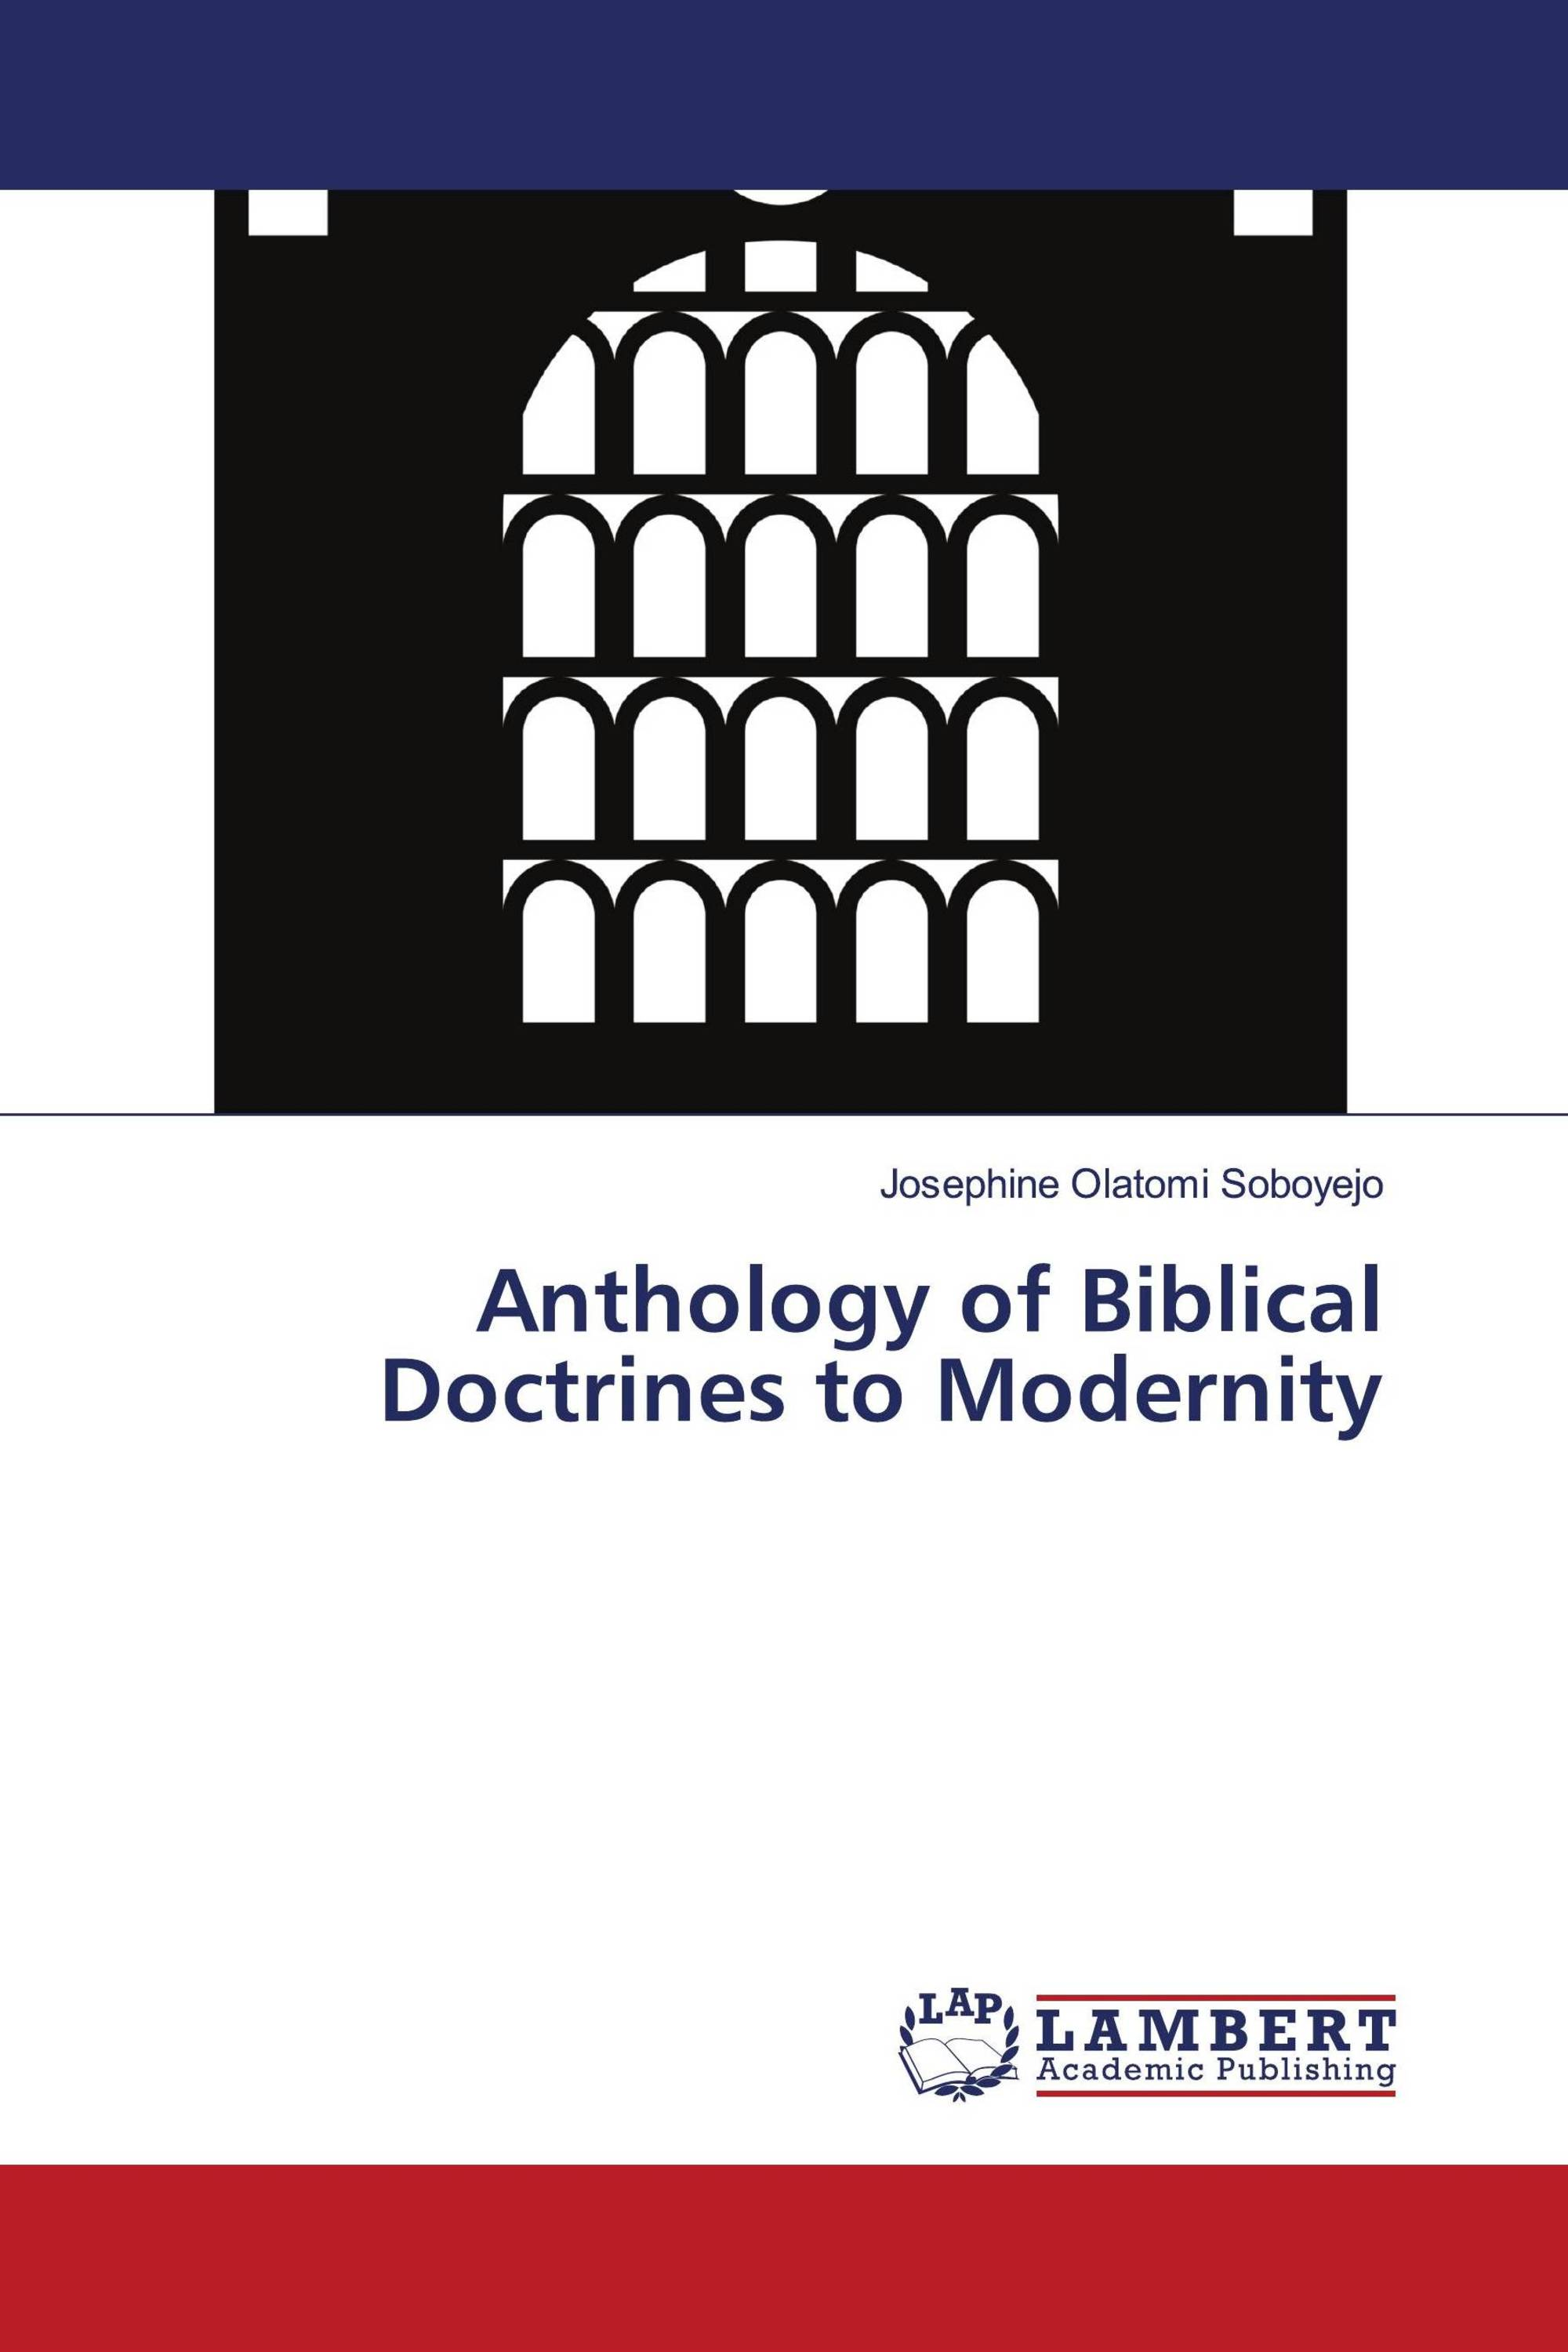 Anthology of Biblical Doctrines to Modernity